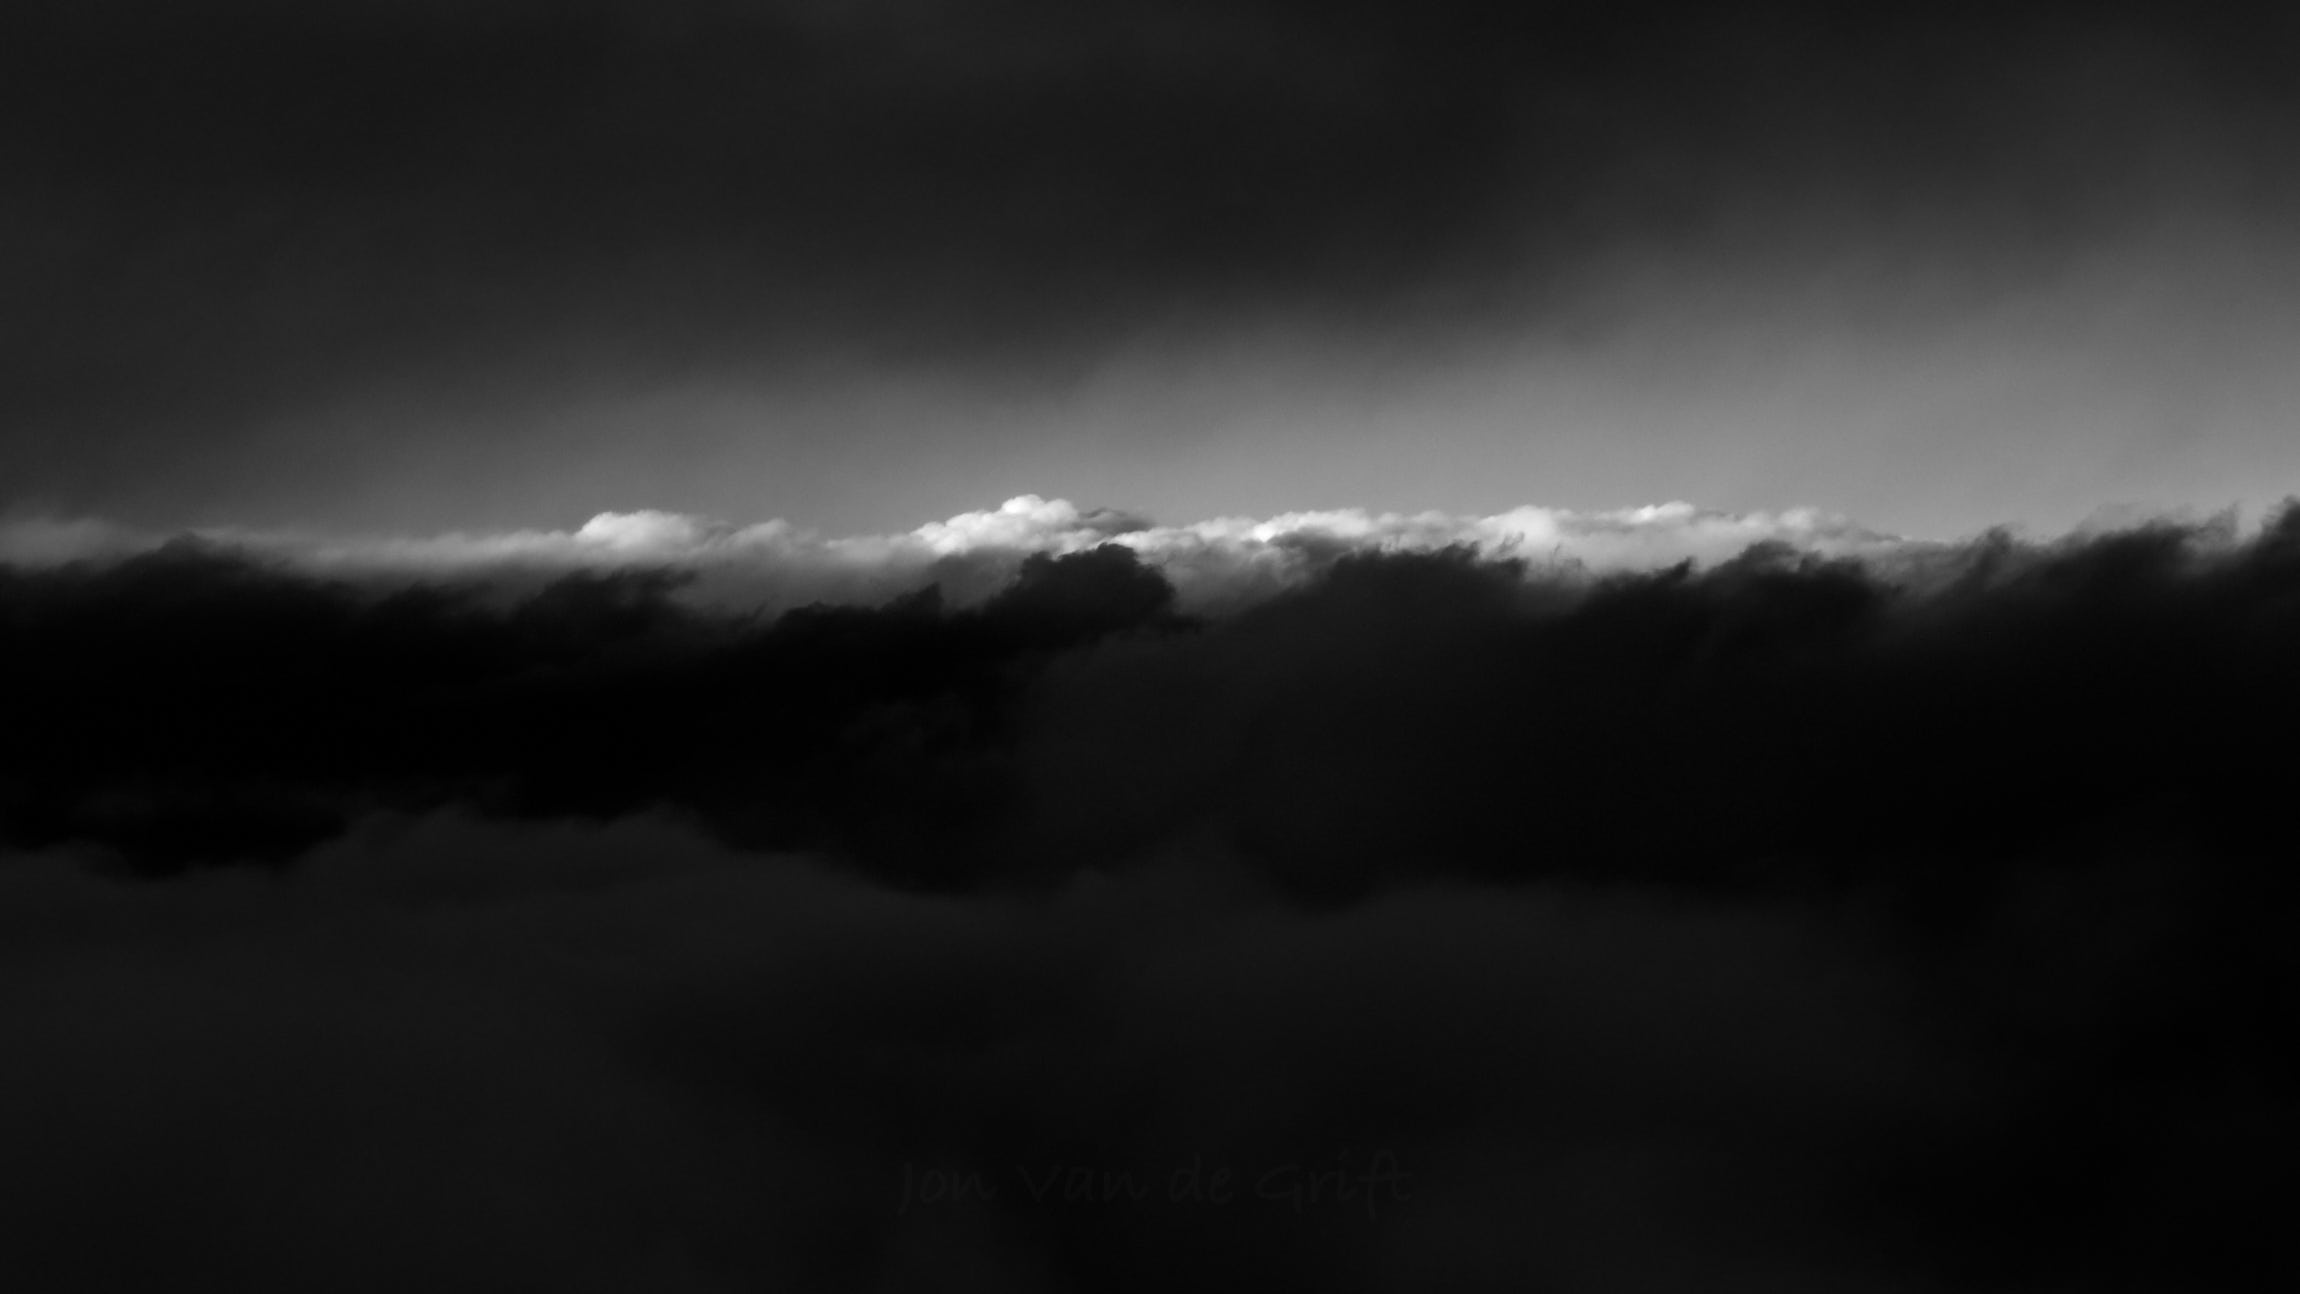 Black and white aerial photograph taken at cloud level.